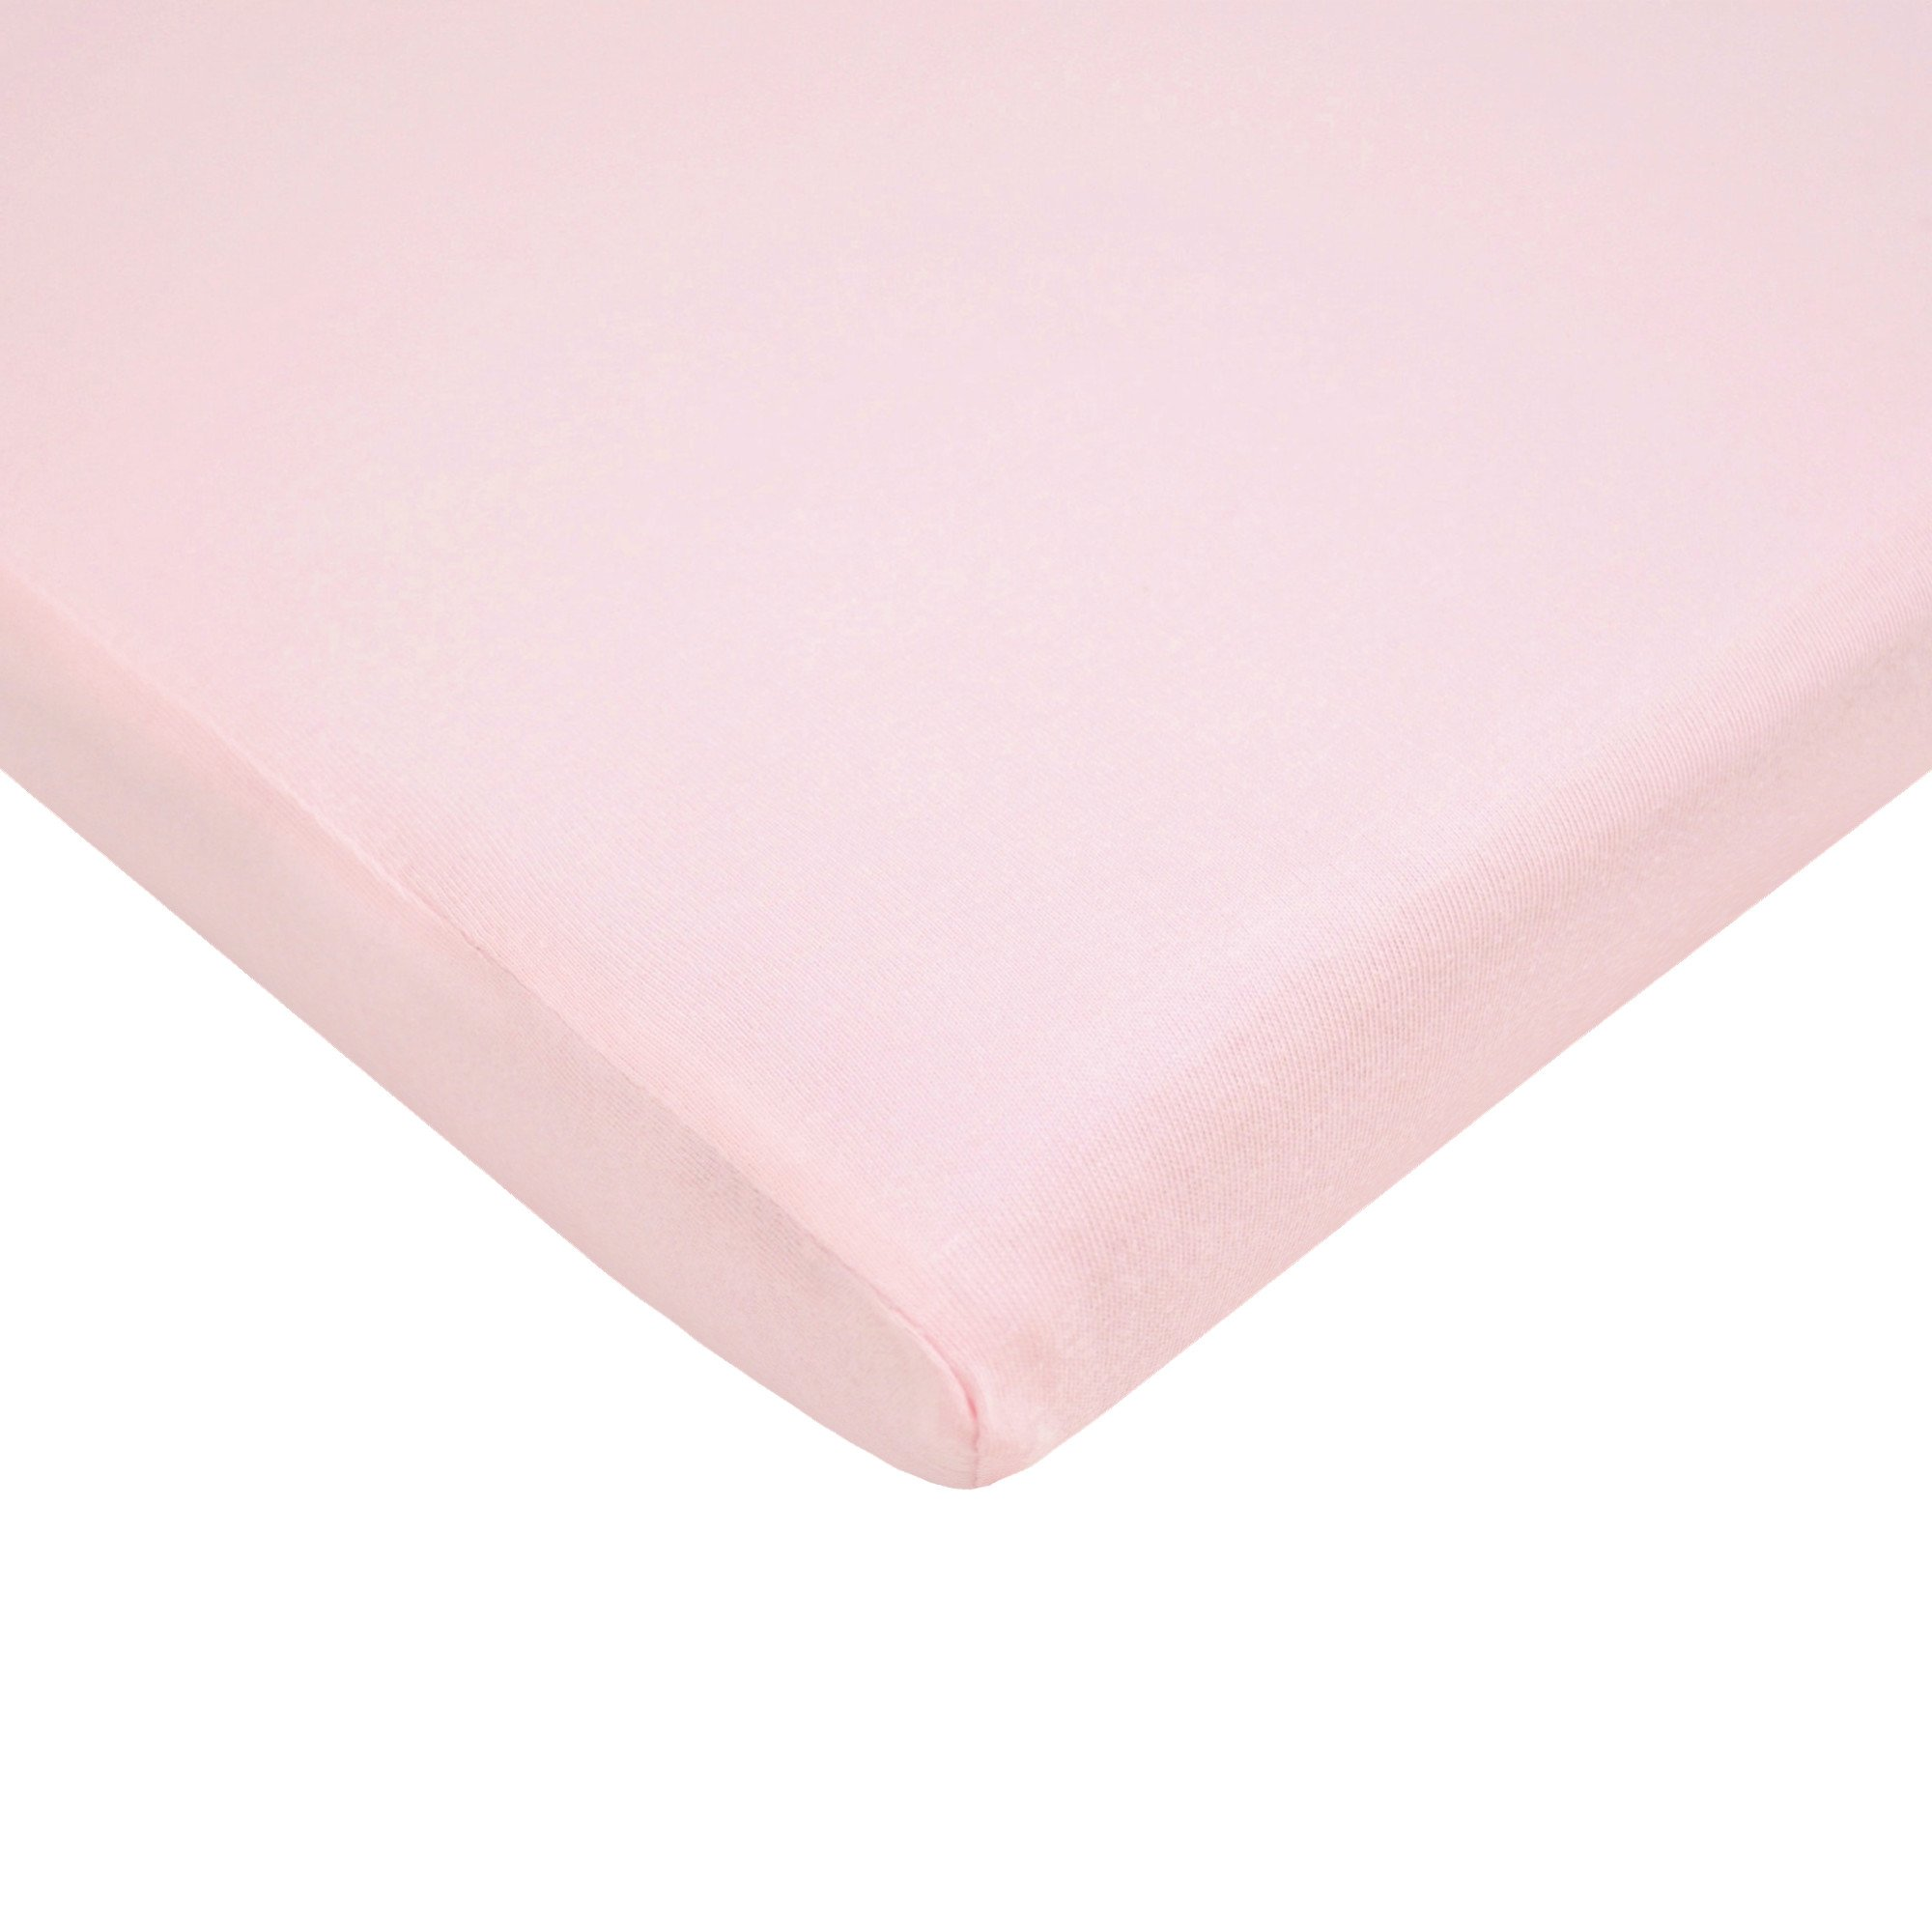 American Baby Company 100% Natural Cotton Value Jersey Knit  Fitted Bassinet Sheet, Pink, Soft Breathable, for Girls